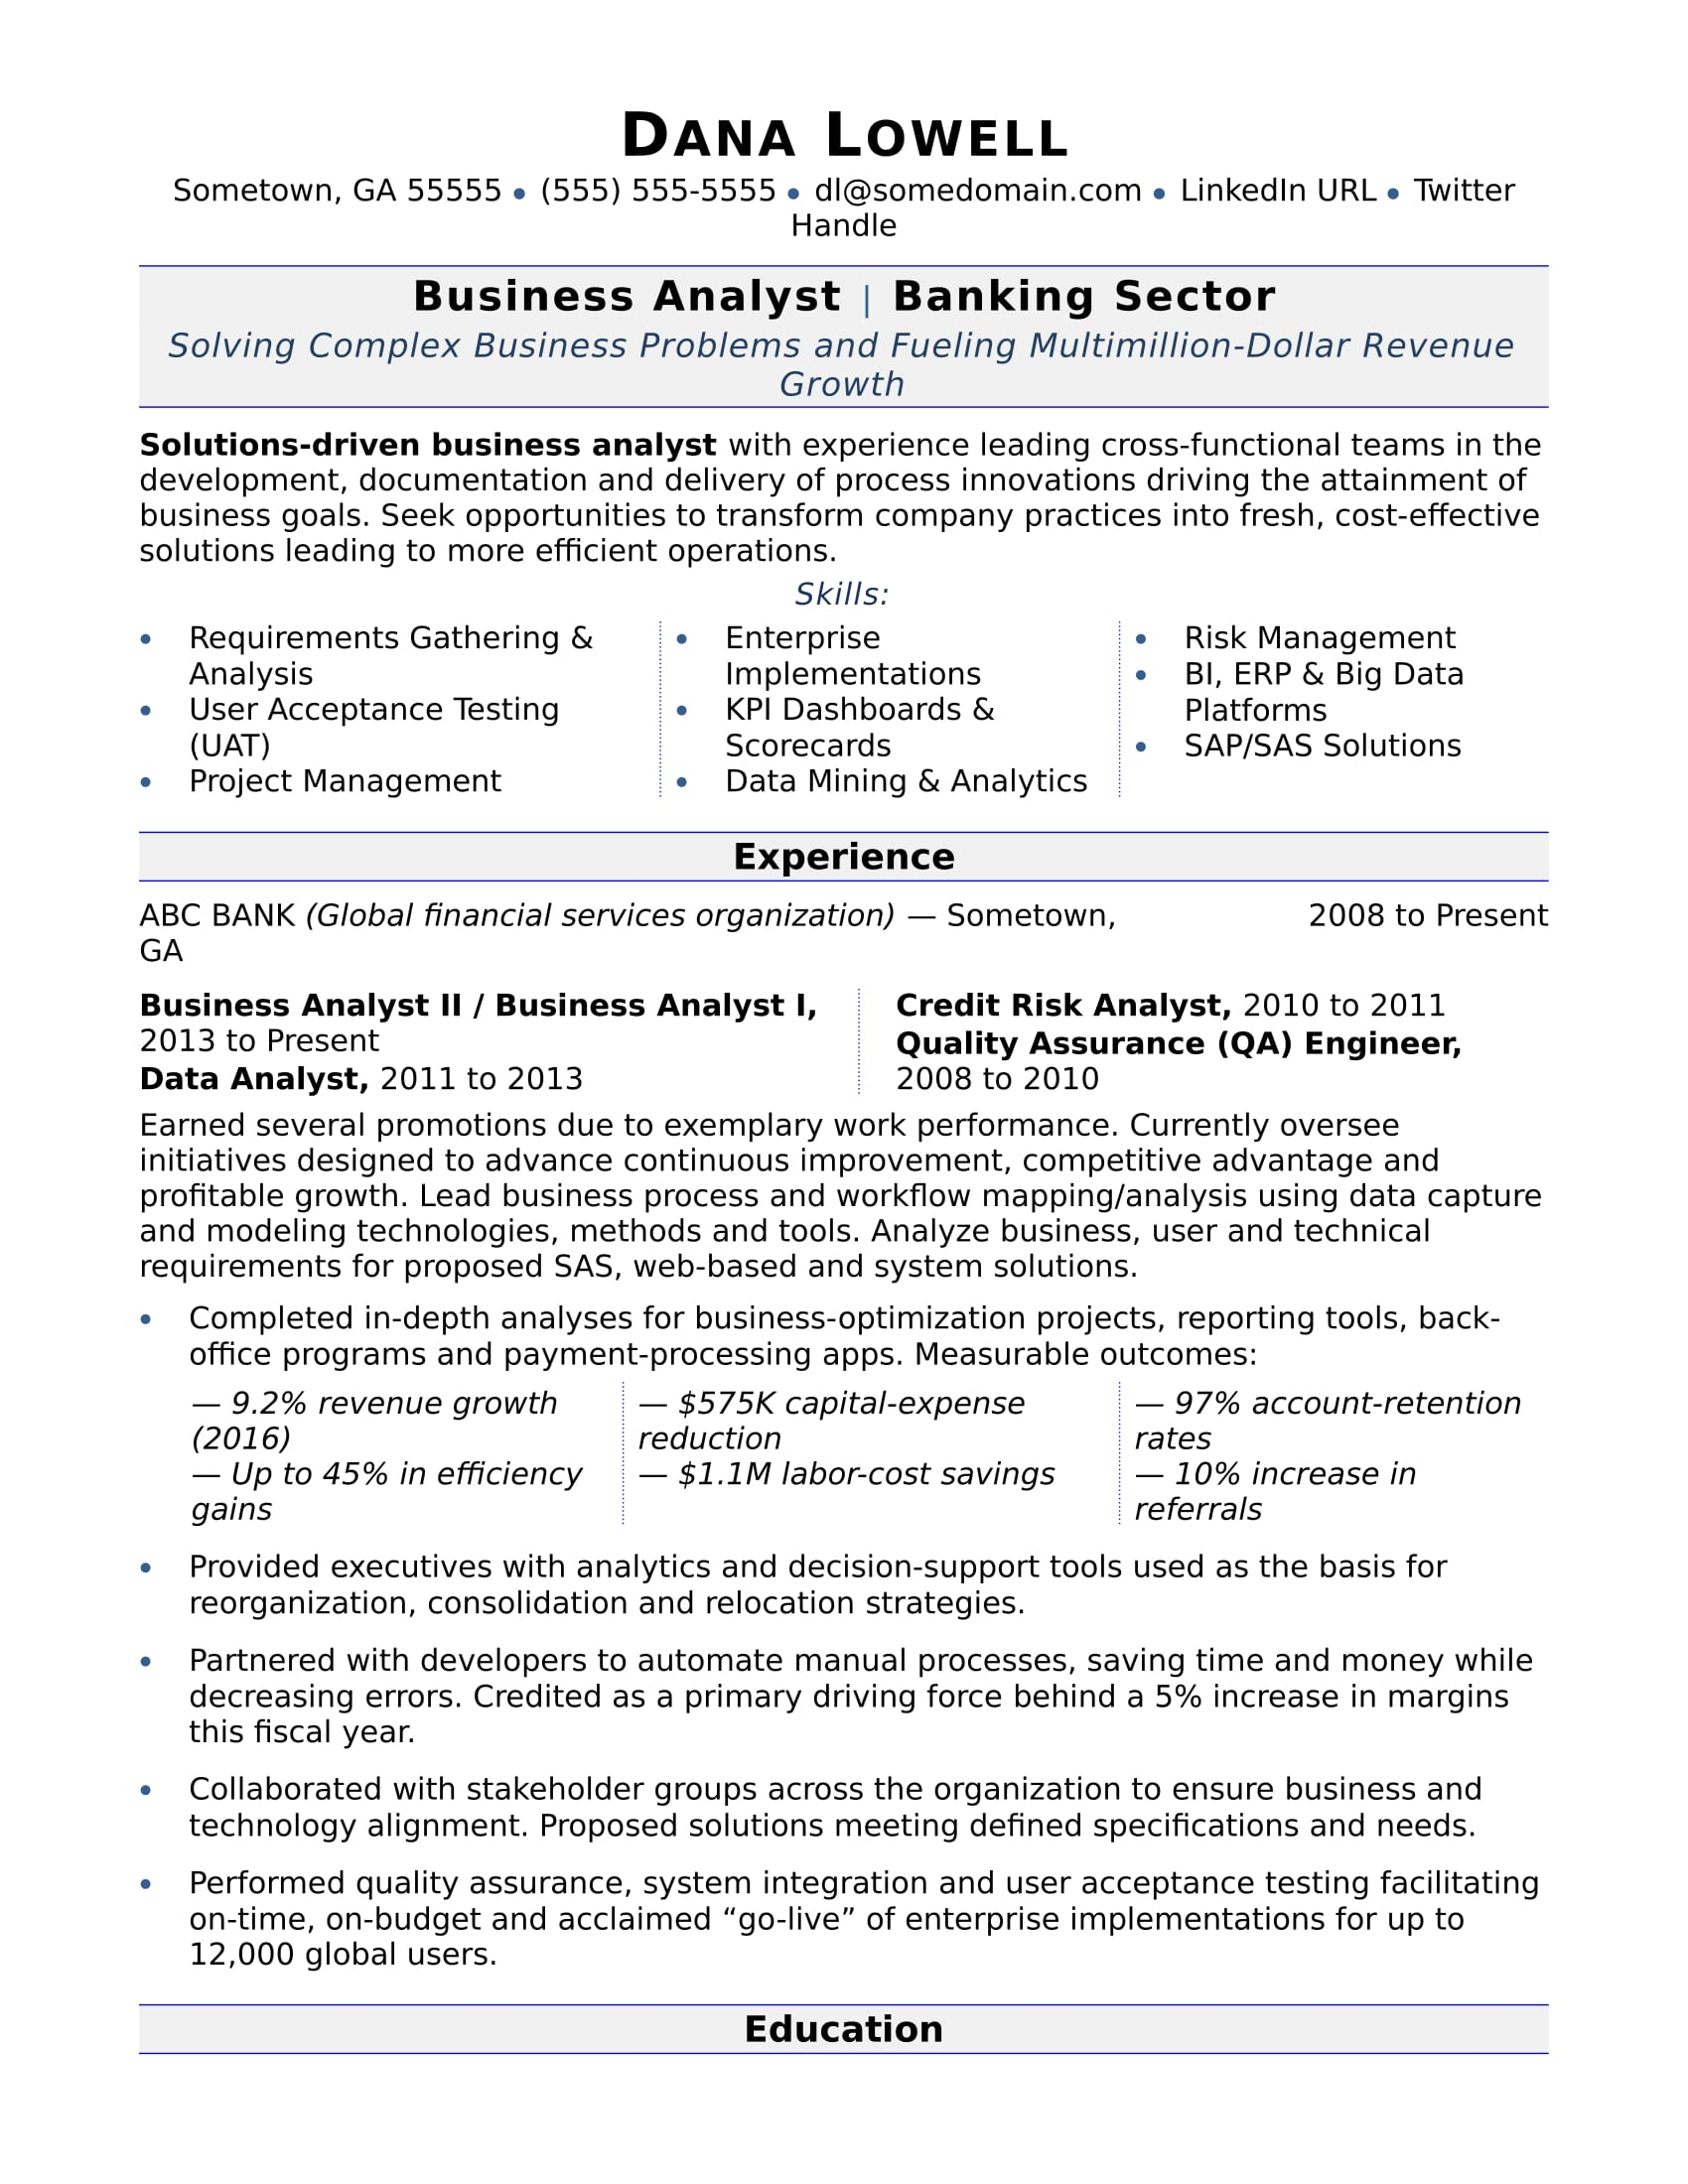 business analyst resume sample - Business Systems Analyst Resume